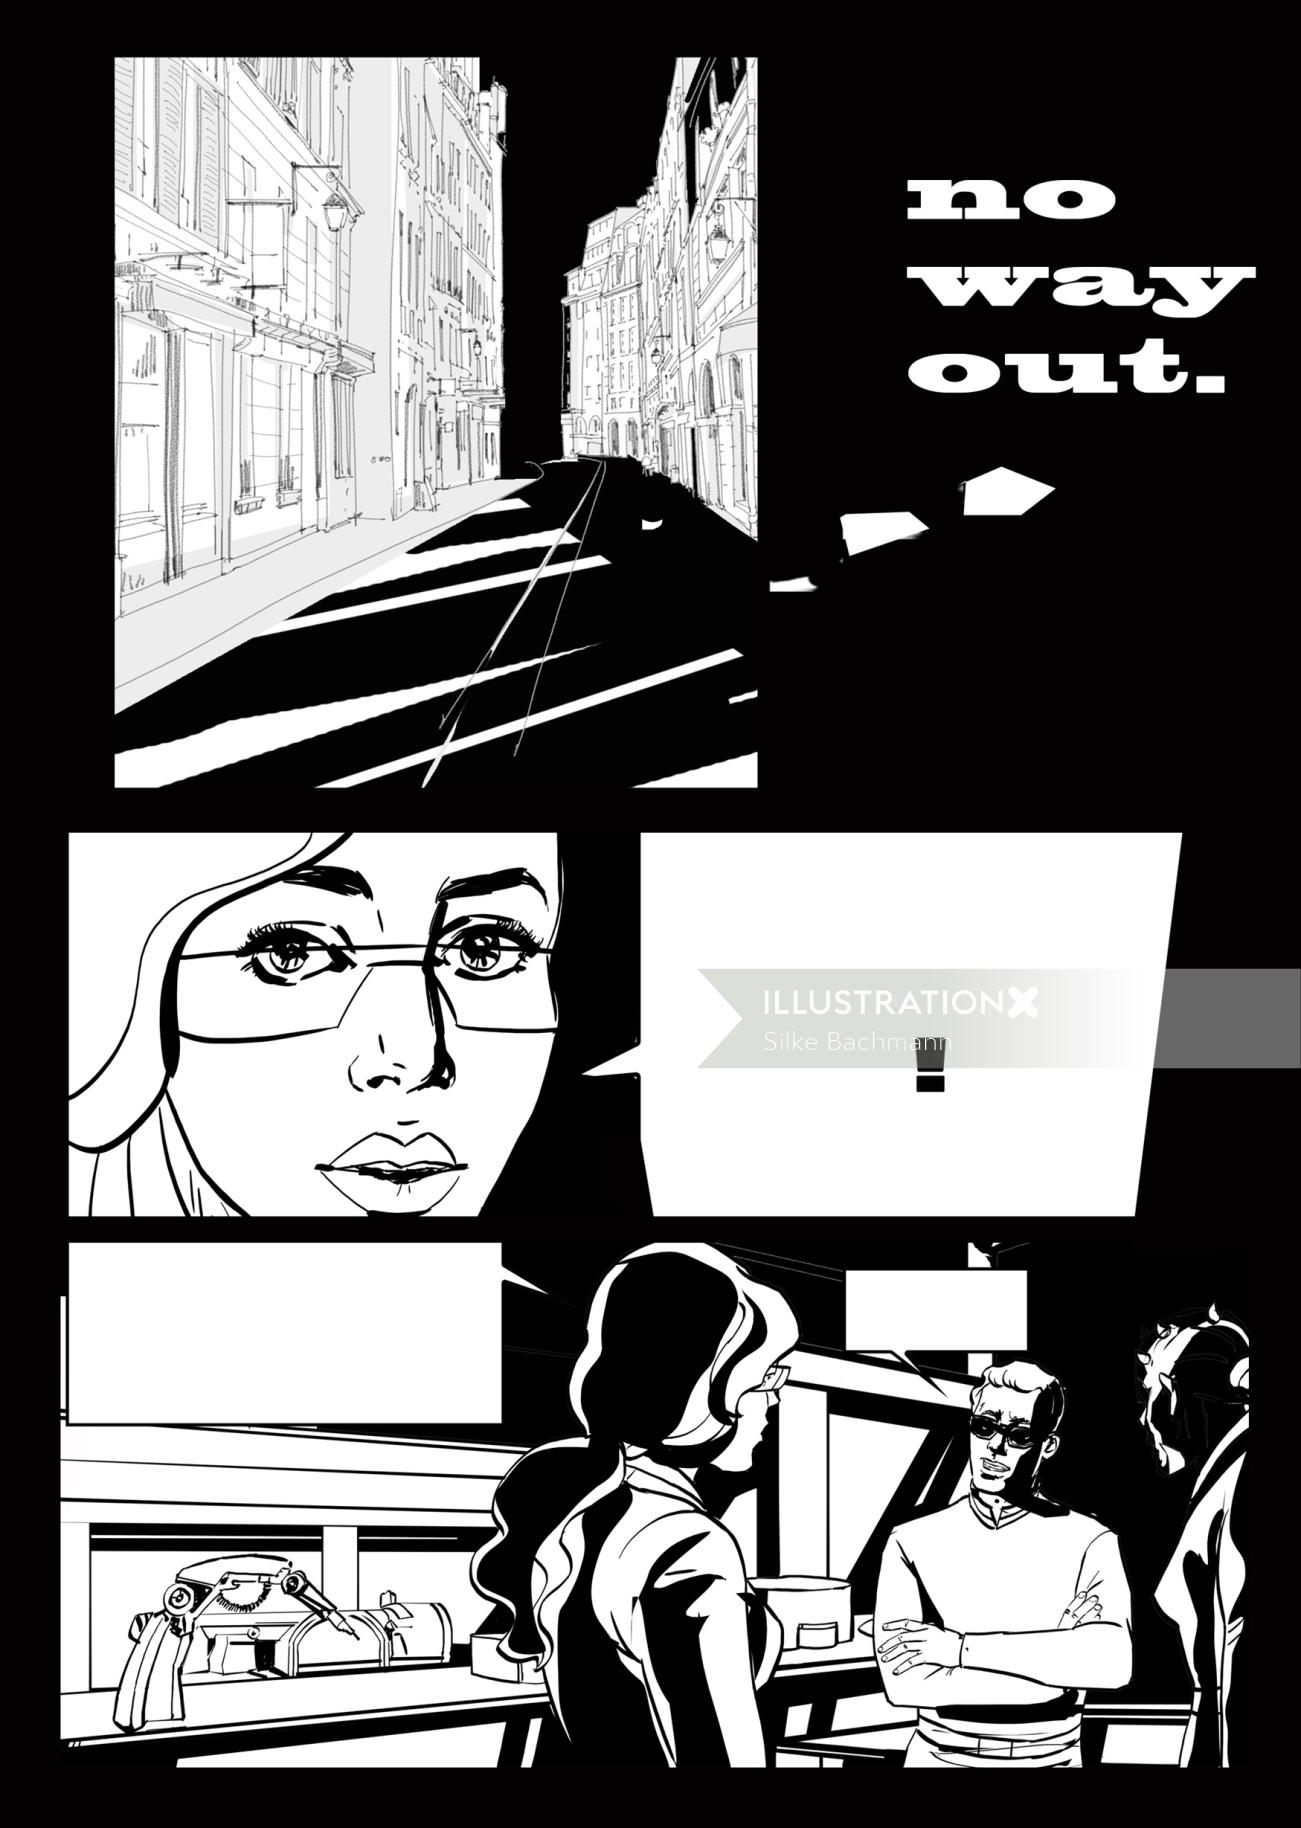 Graphic illustration of No way out